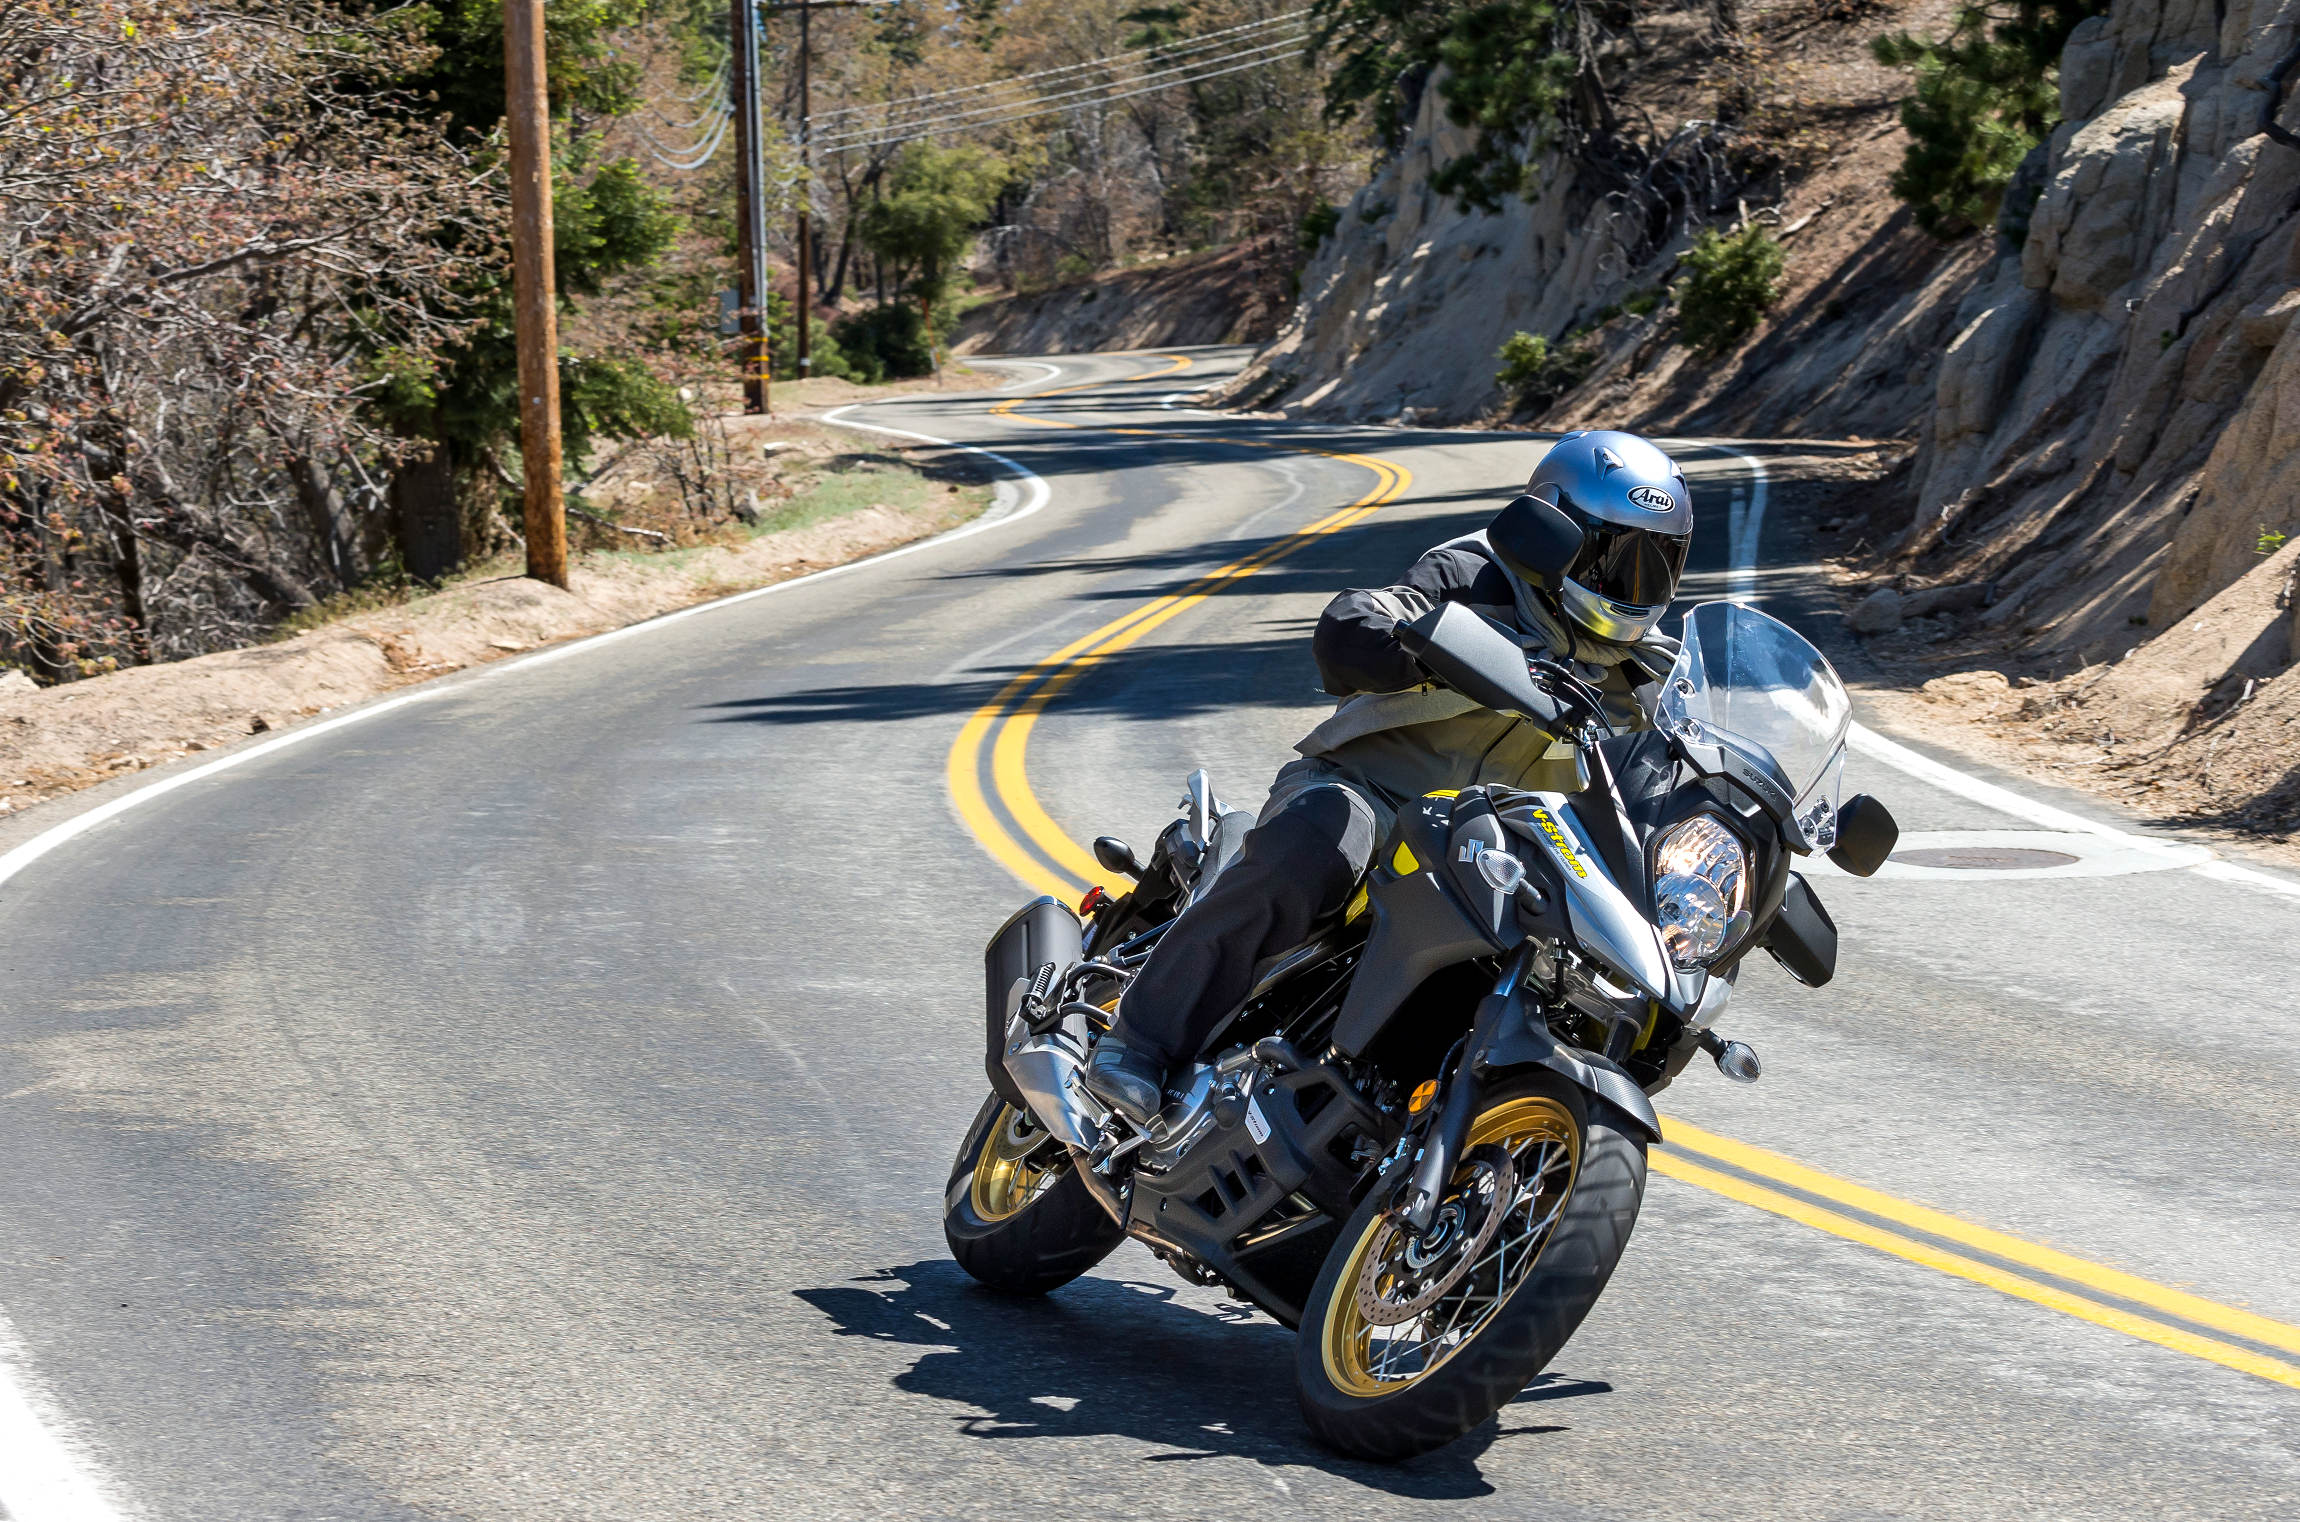 Ken 1 12 By Strom 2017 Suzuki V 650 And 650xt Md First Ride Motorcycledaily